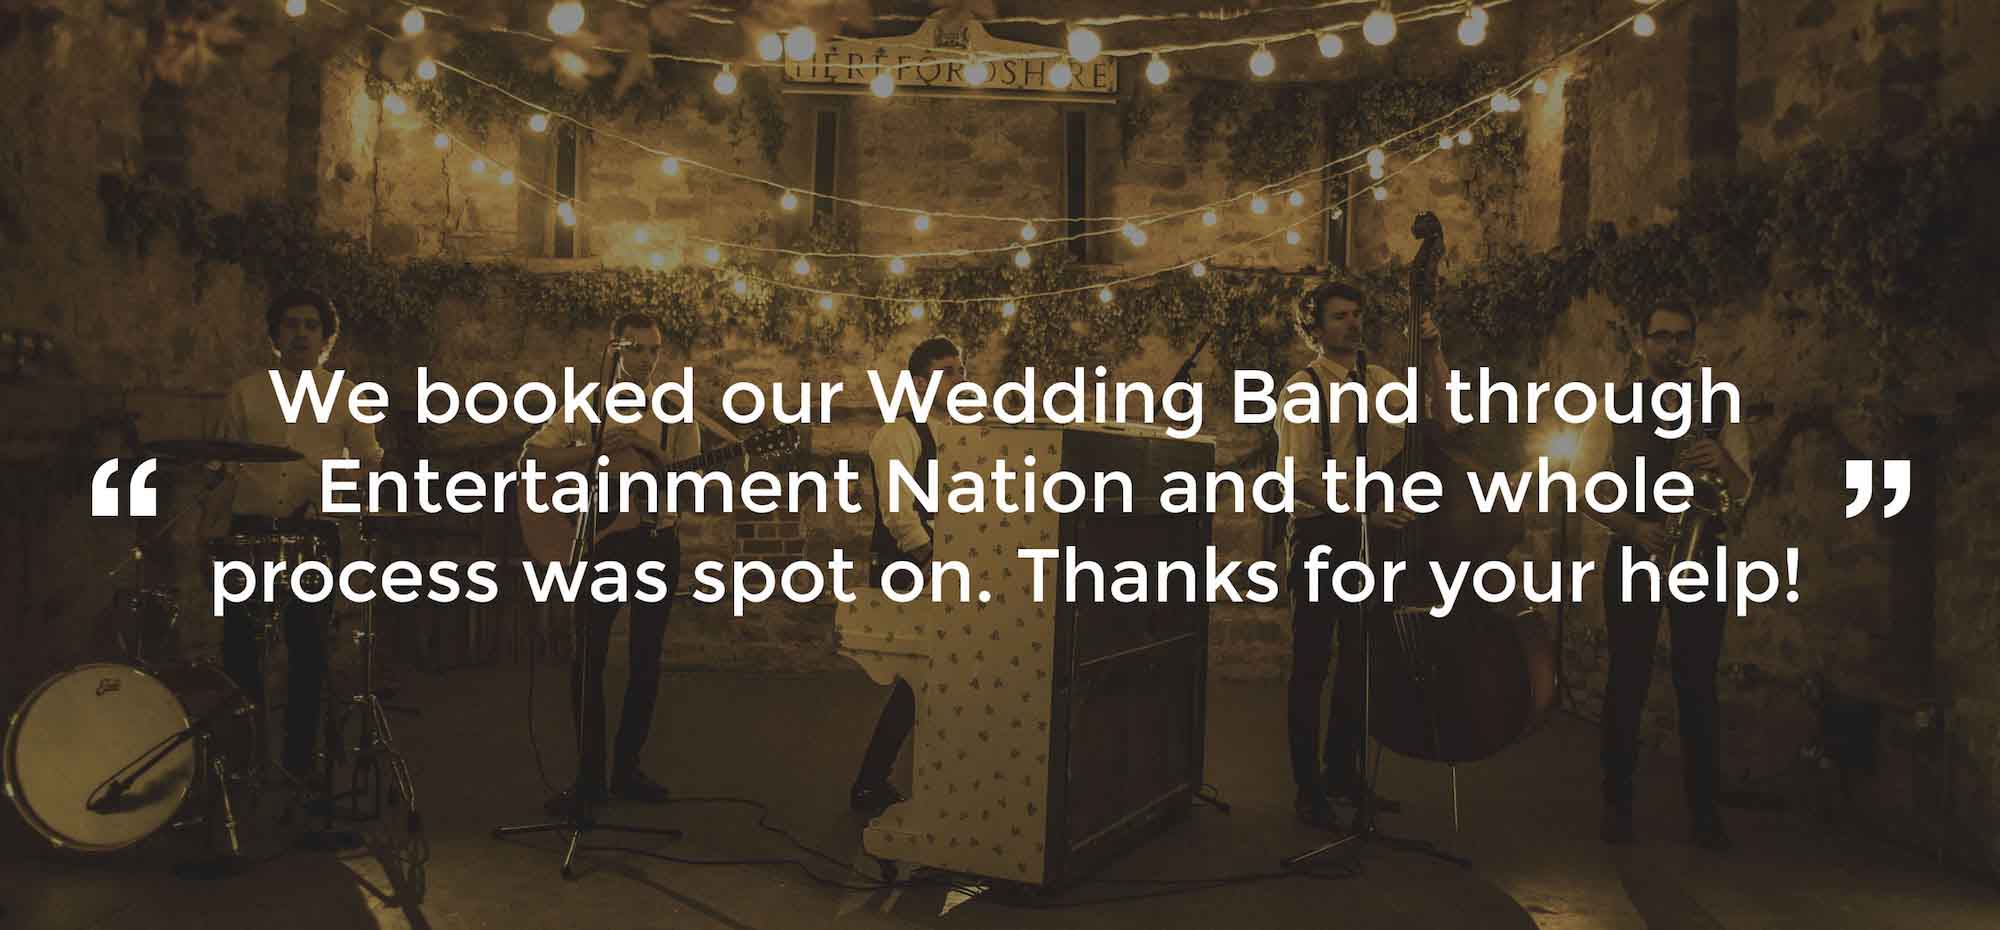 Client Review of a Wedding Band Lancashire